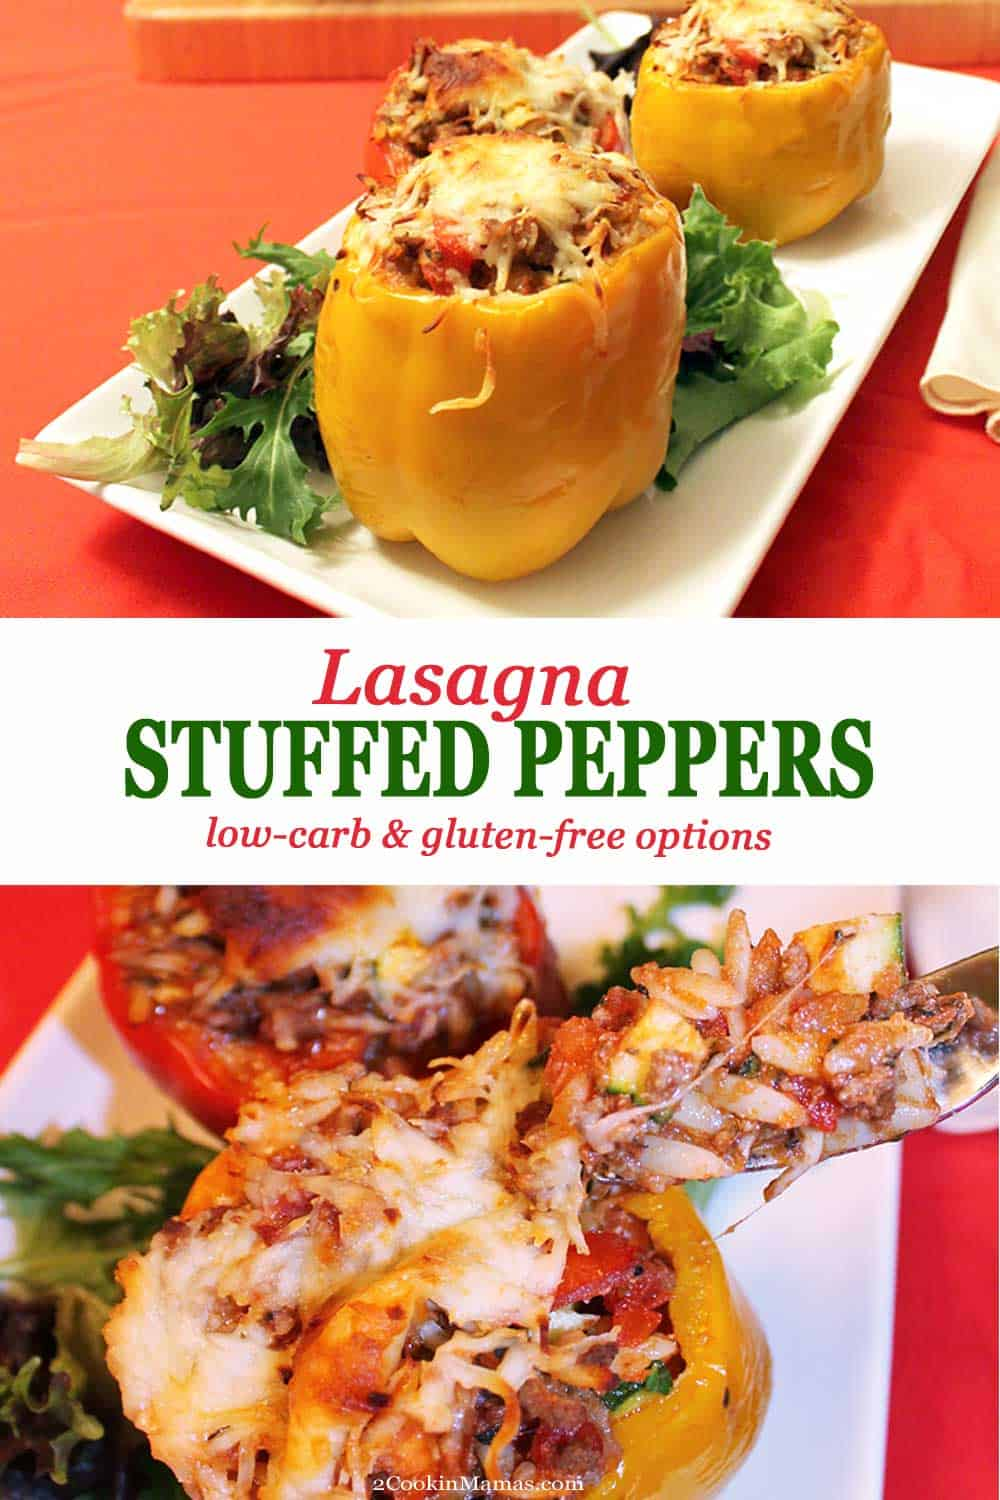 Lasagna Stuffed Peppers | 2 Cookin Mamas Italian-style stuffed peppers are like a low-carb lasagna recipe prepared in their own dish. A delicious mix of ground beef, orzo & tomato sauce, stuffed into tri-color peppers, and ready in 45! #stuffedpeppers #lasagna #lowcarb #groundbeef #dinner #recipe #peppers #mozzarella #orzo